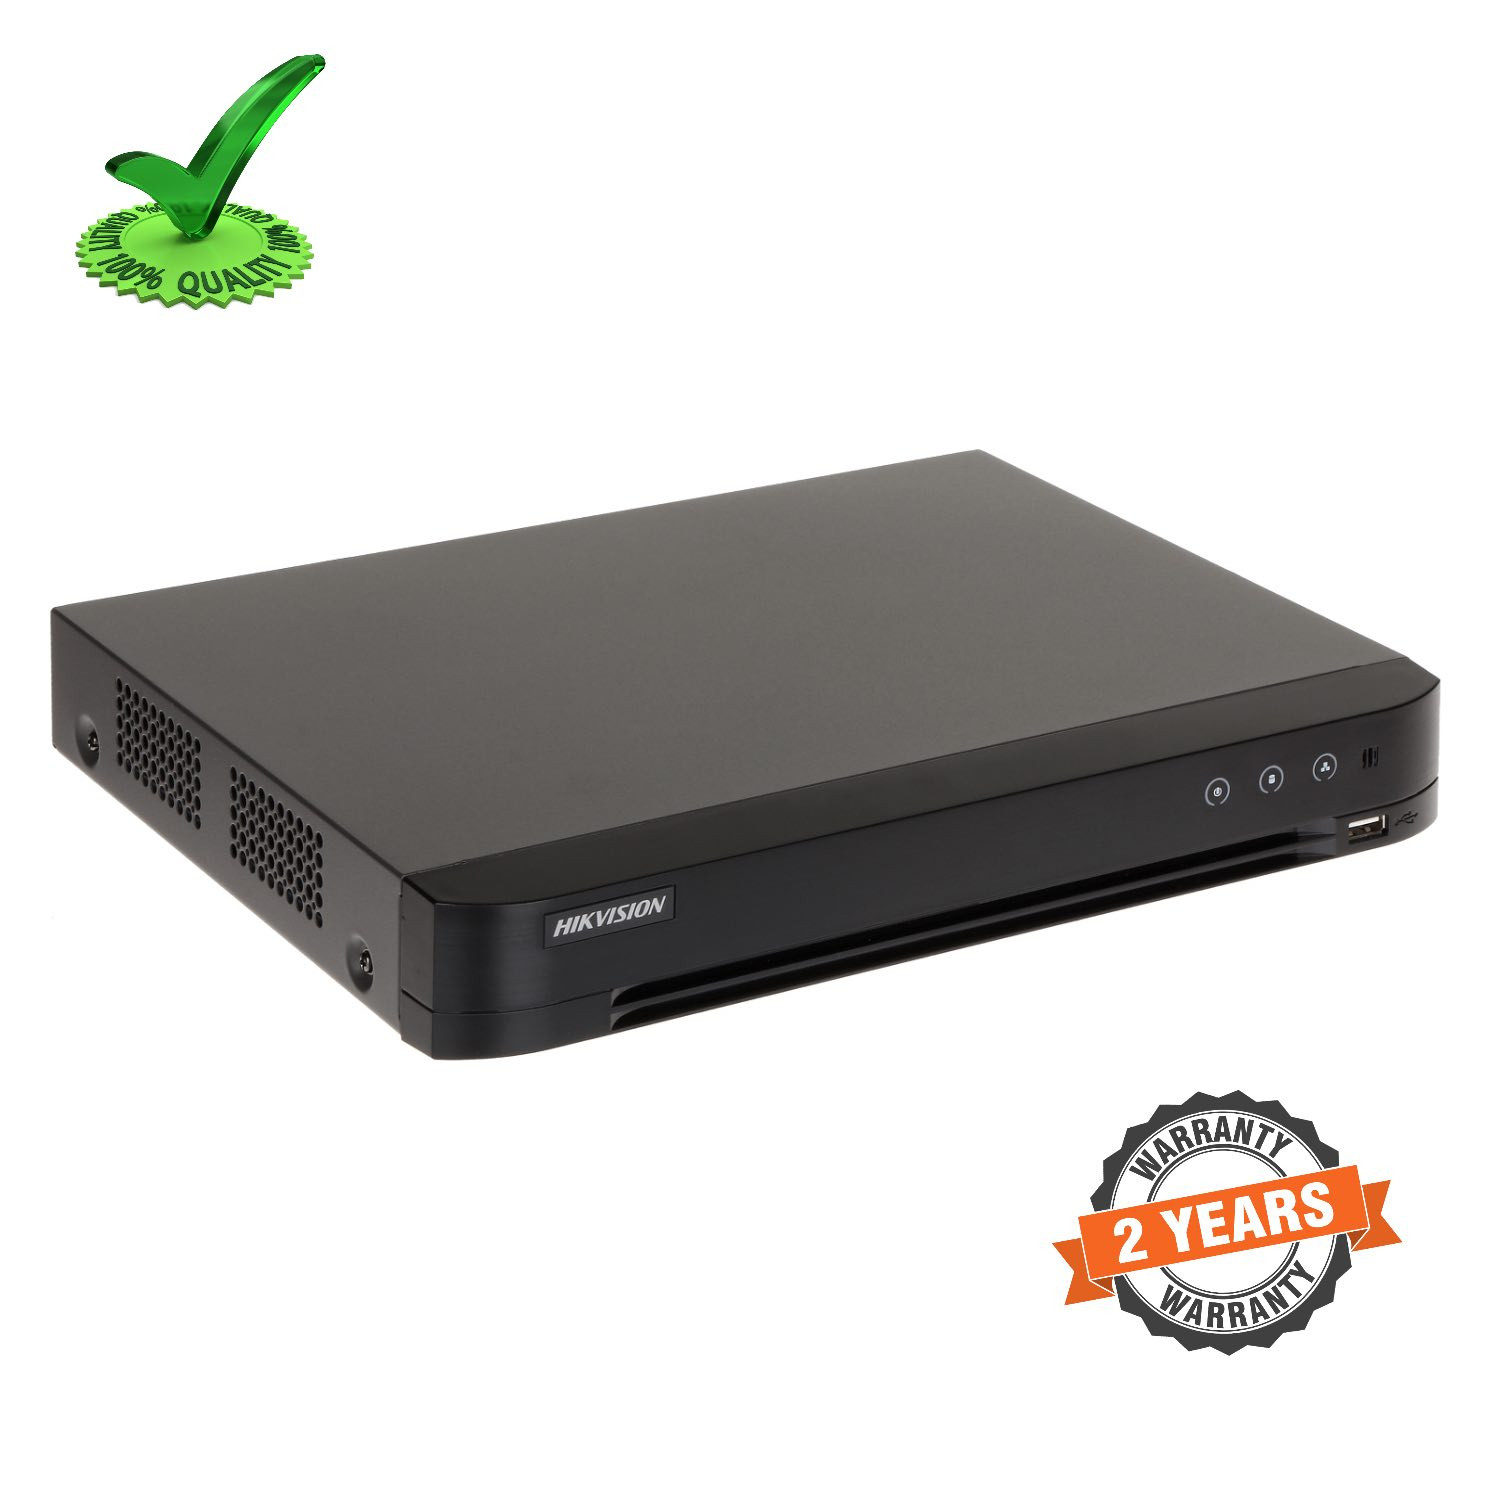 Hikvision iDS-7208HQHI-M1/S 8ch 1 Sata 10TB Support Smart Turbo DVR